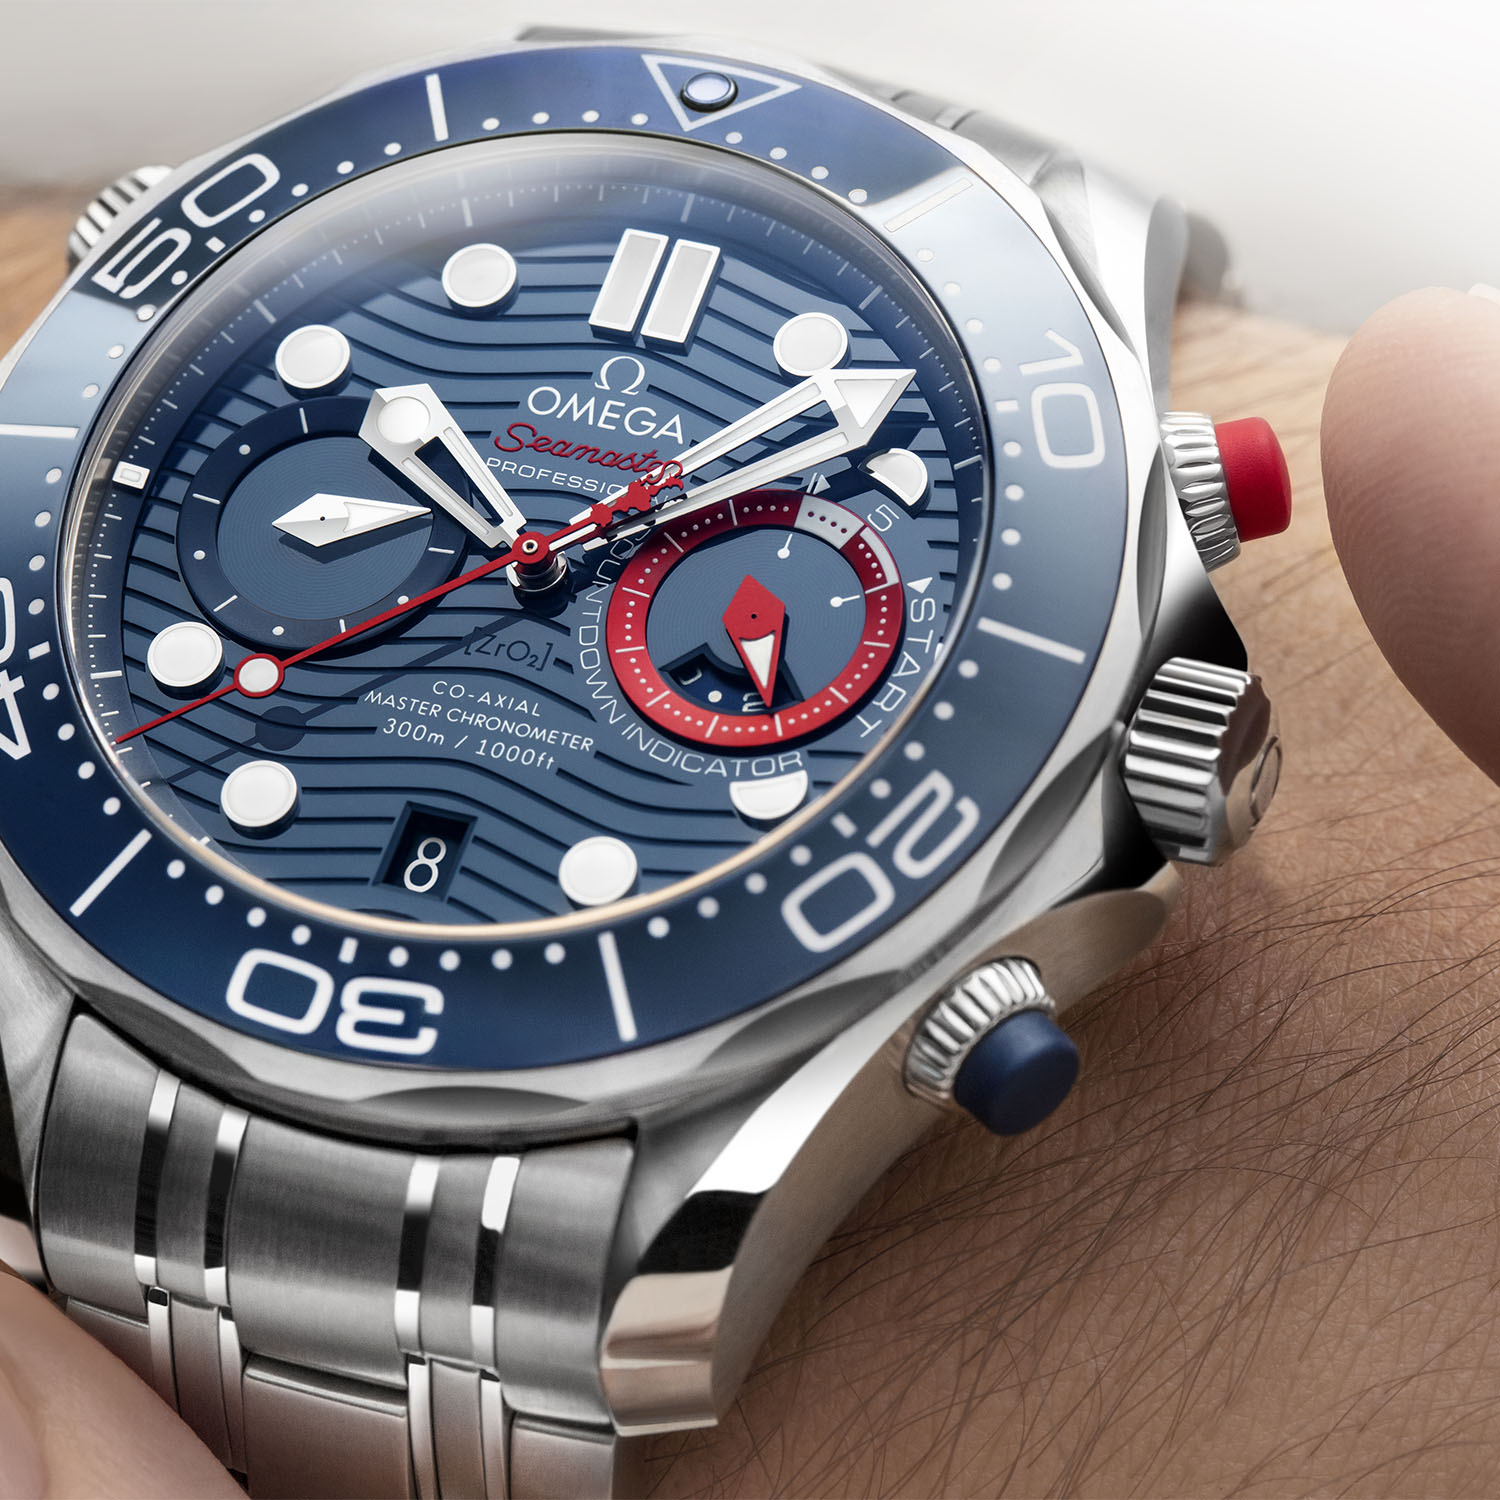 Omega Seamaster Diver 300M 36th Americas Cup Chronograph 210-30-44-51-03-002 - 6